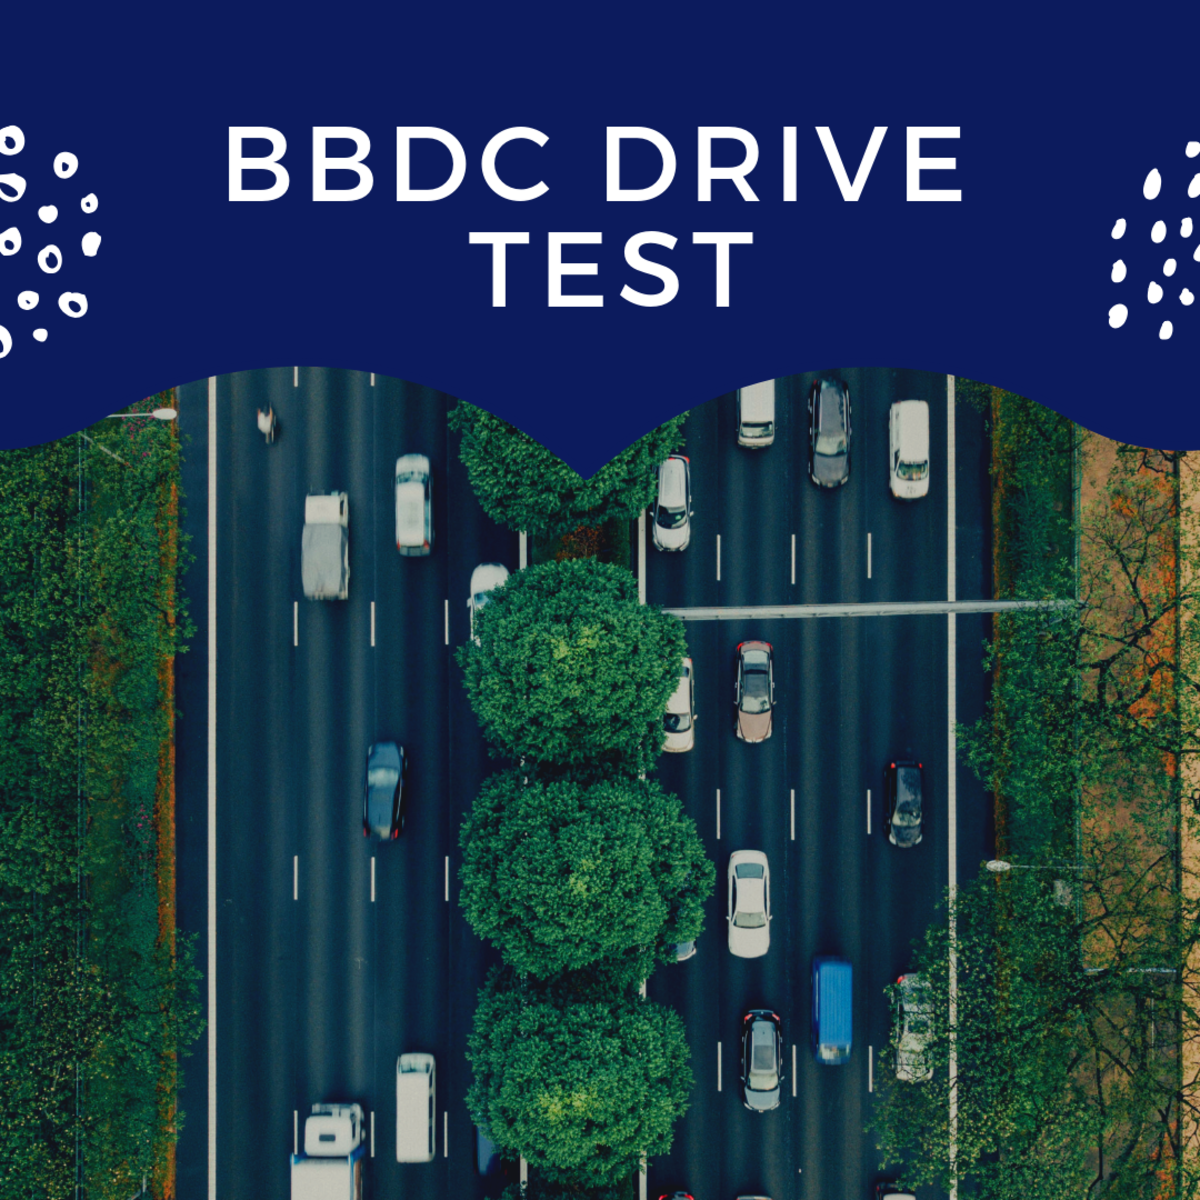 bbdc-test-route-1